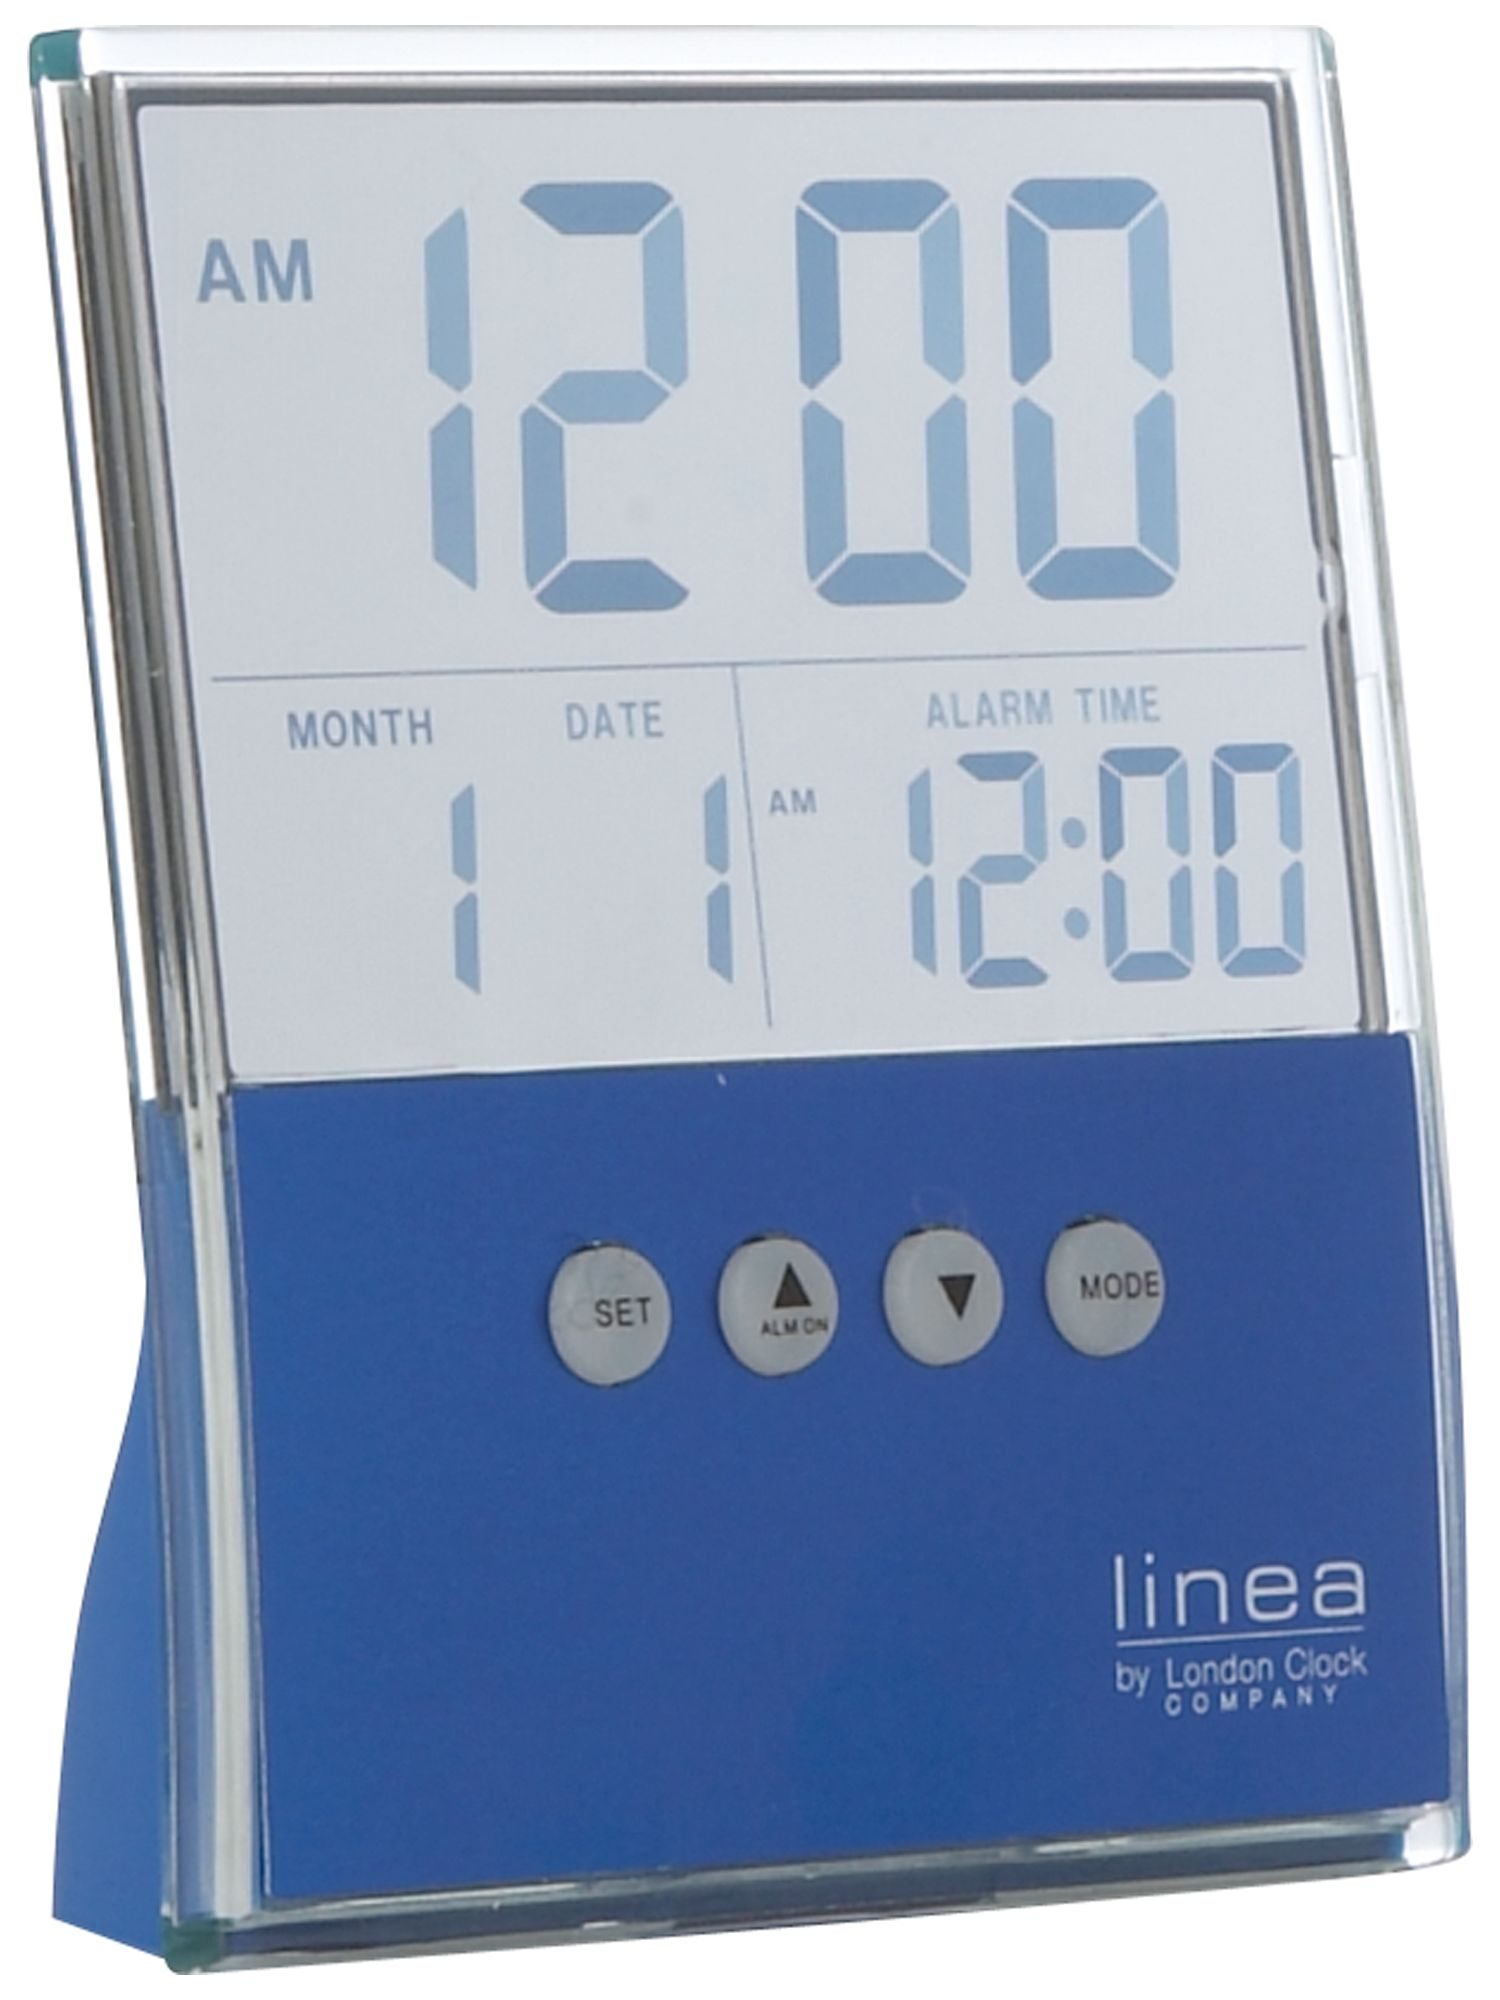 Linea Bright blue LCD alarm clock